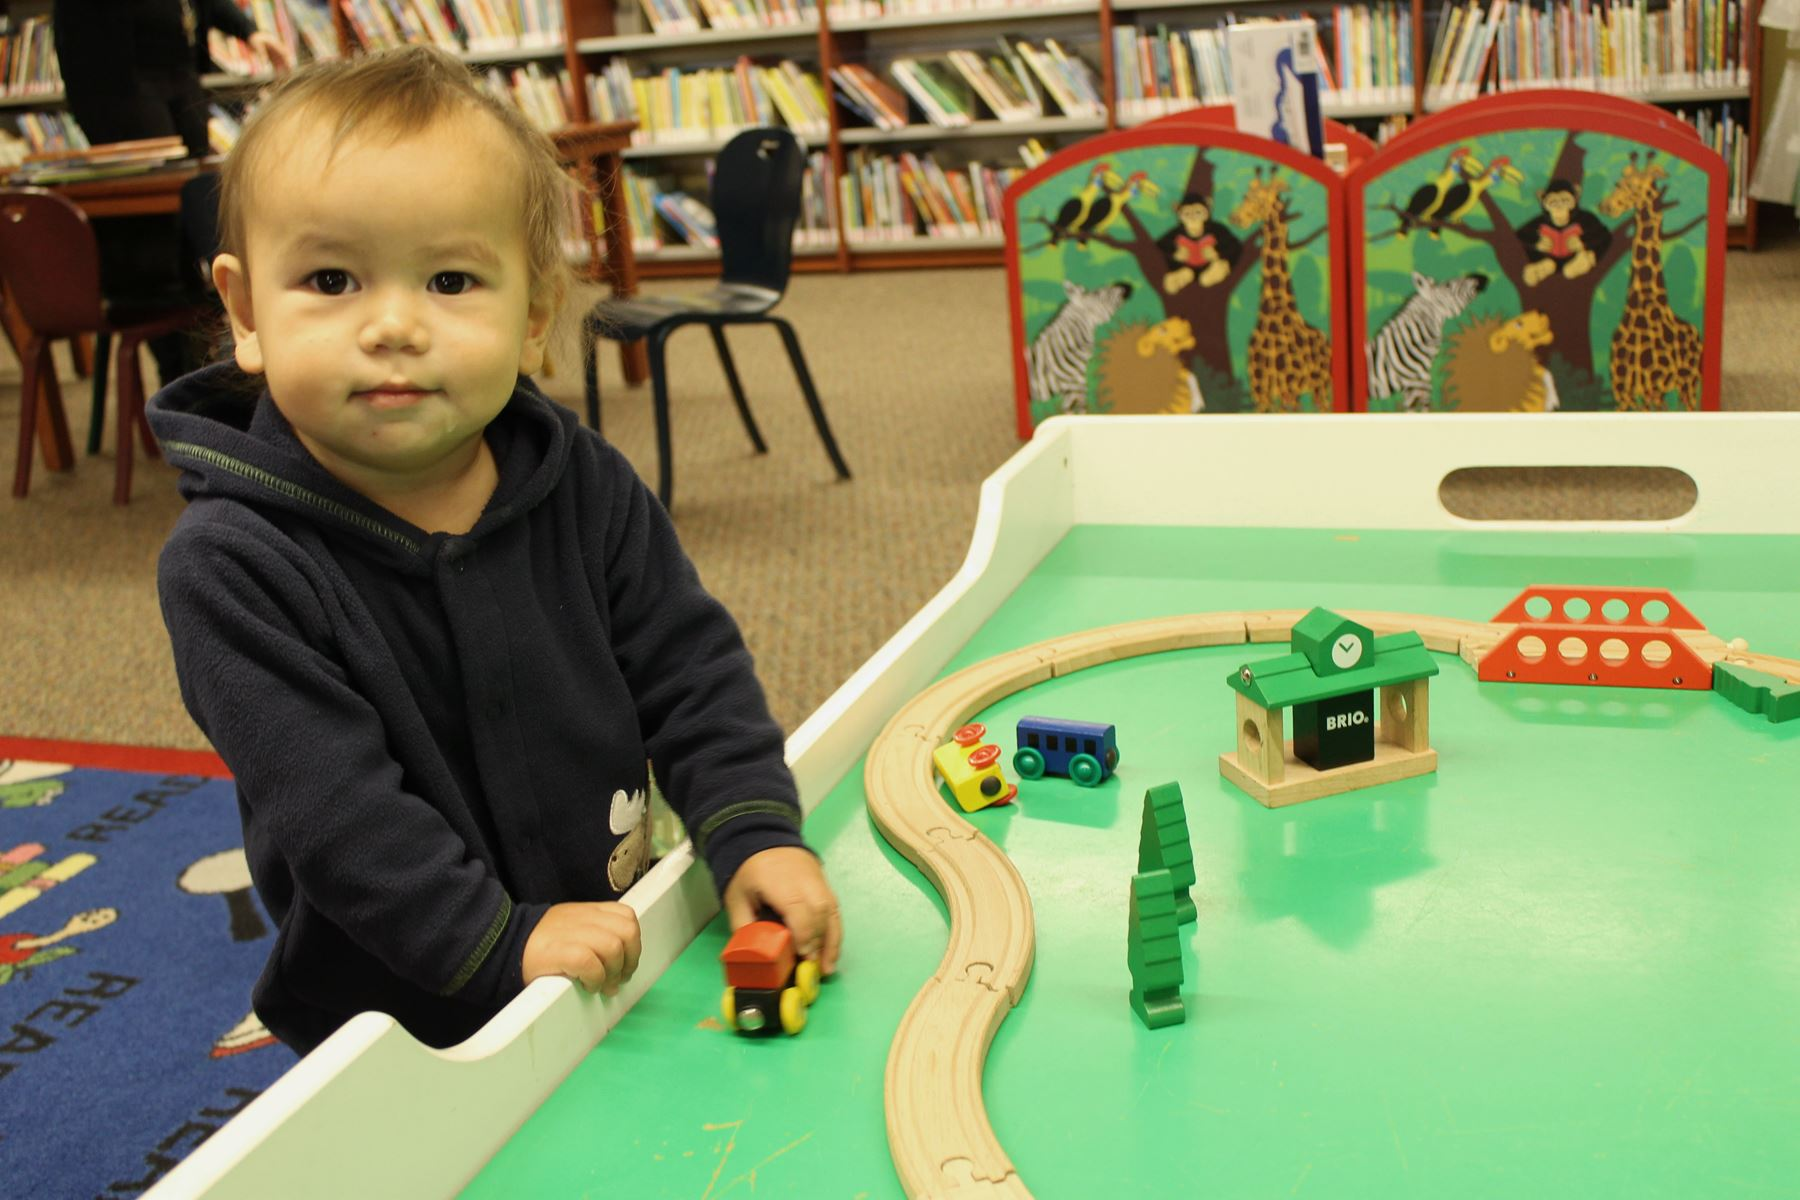 Boy playing with toys in the library